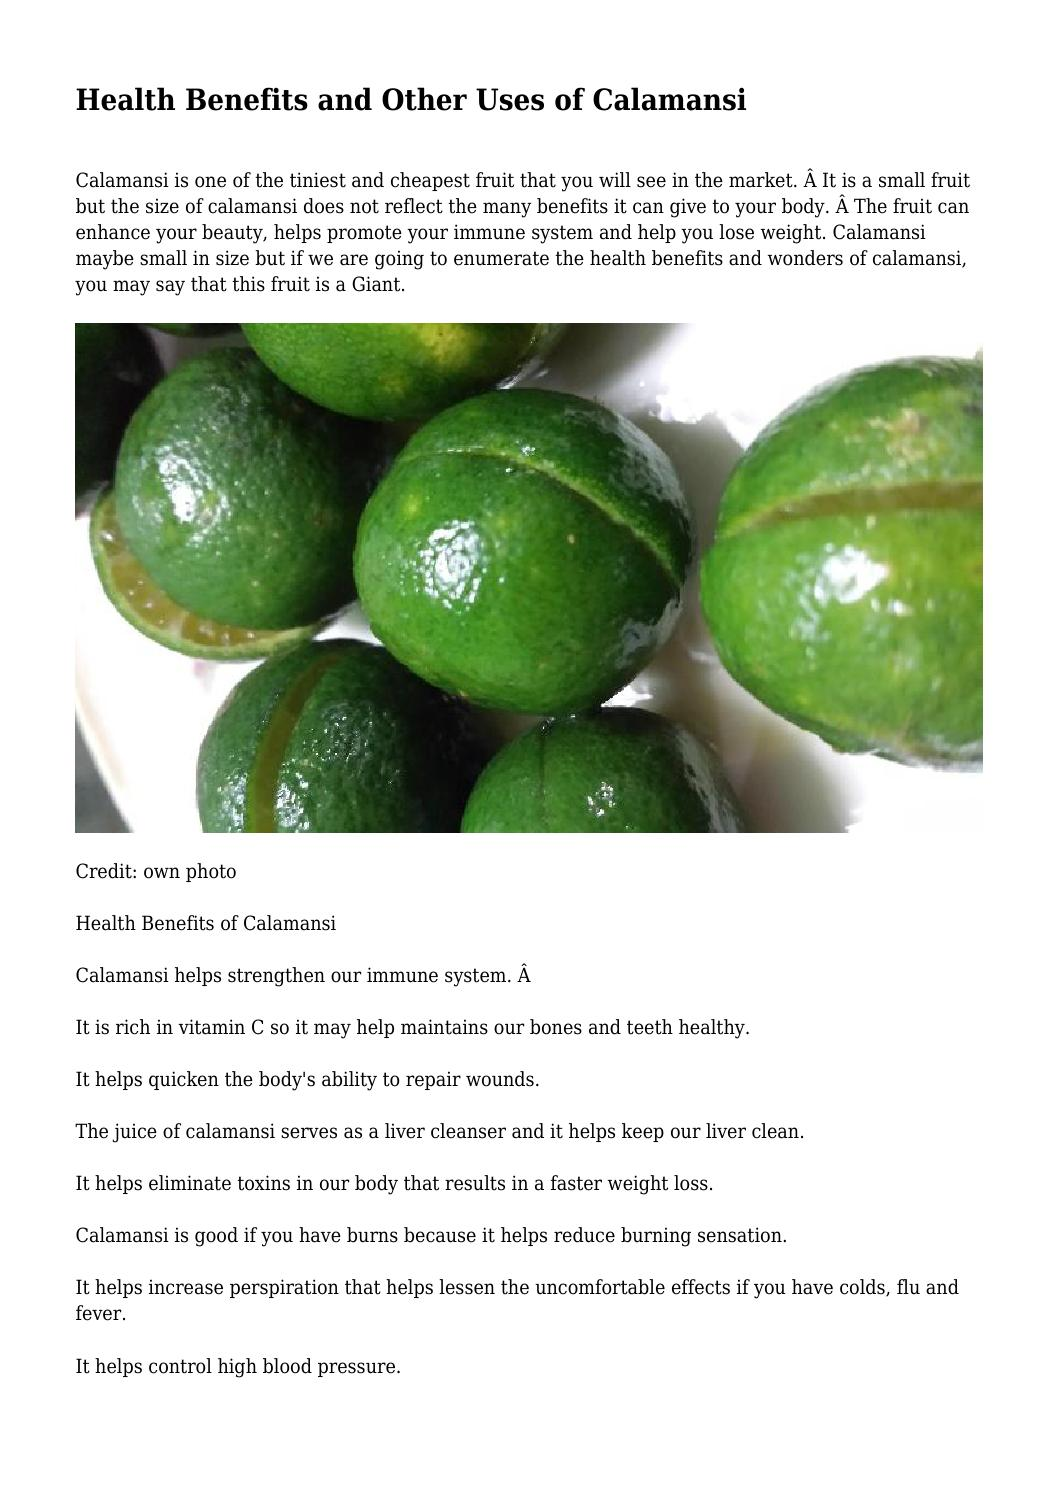 Health Benefits And Other Uses Of Calamansi By